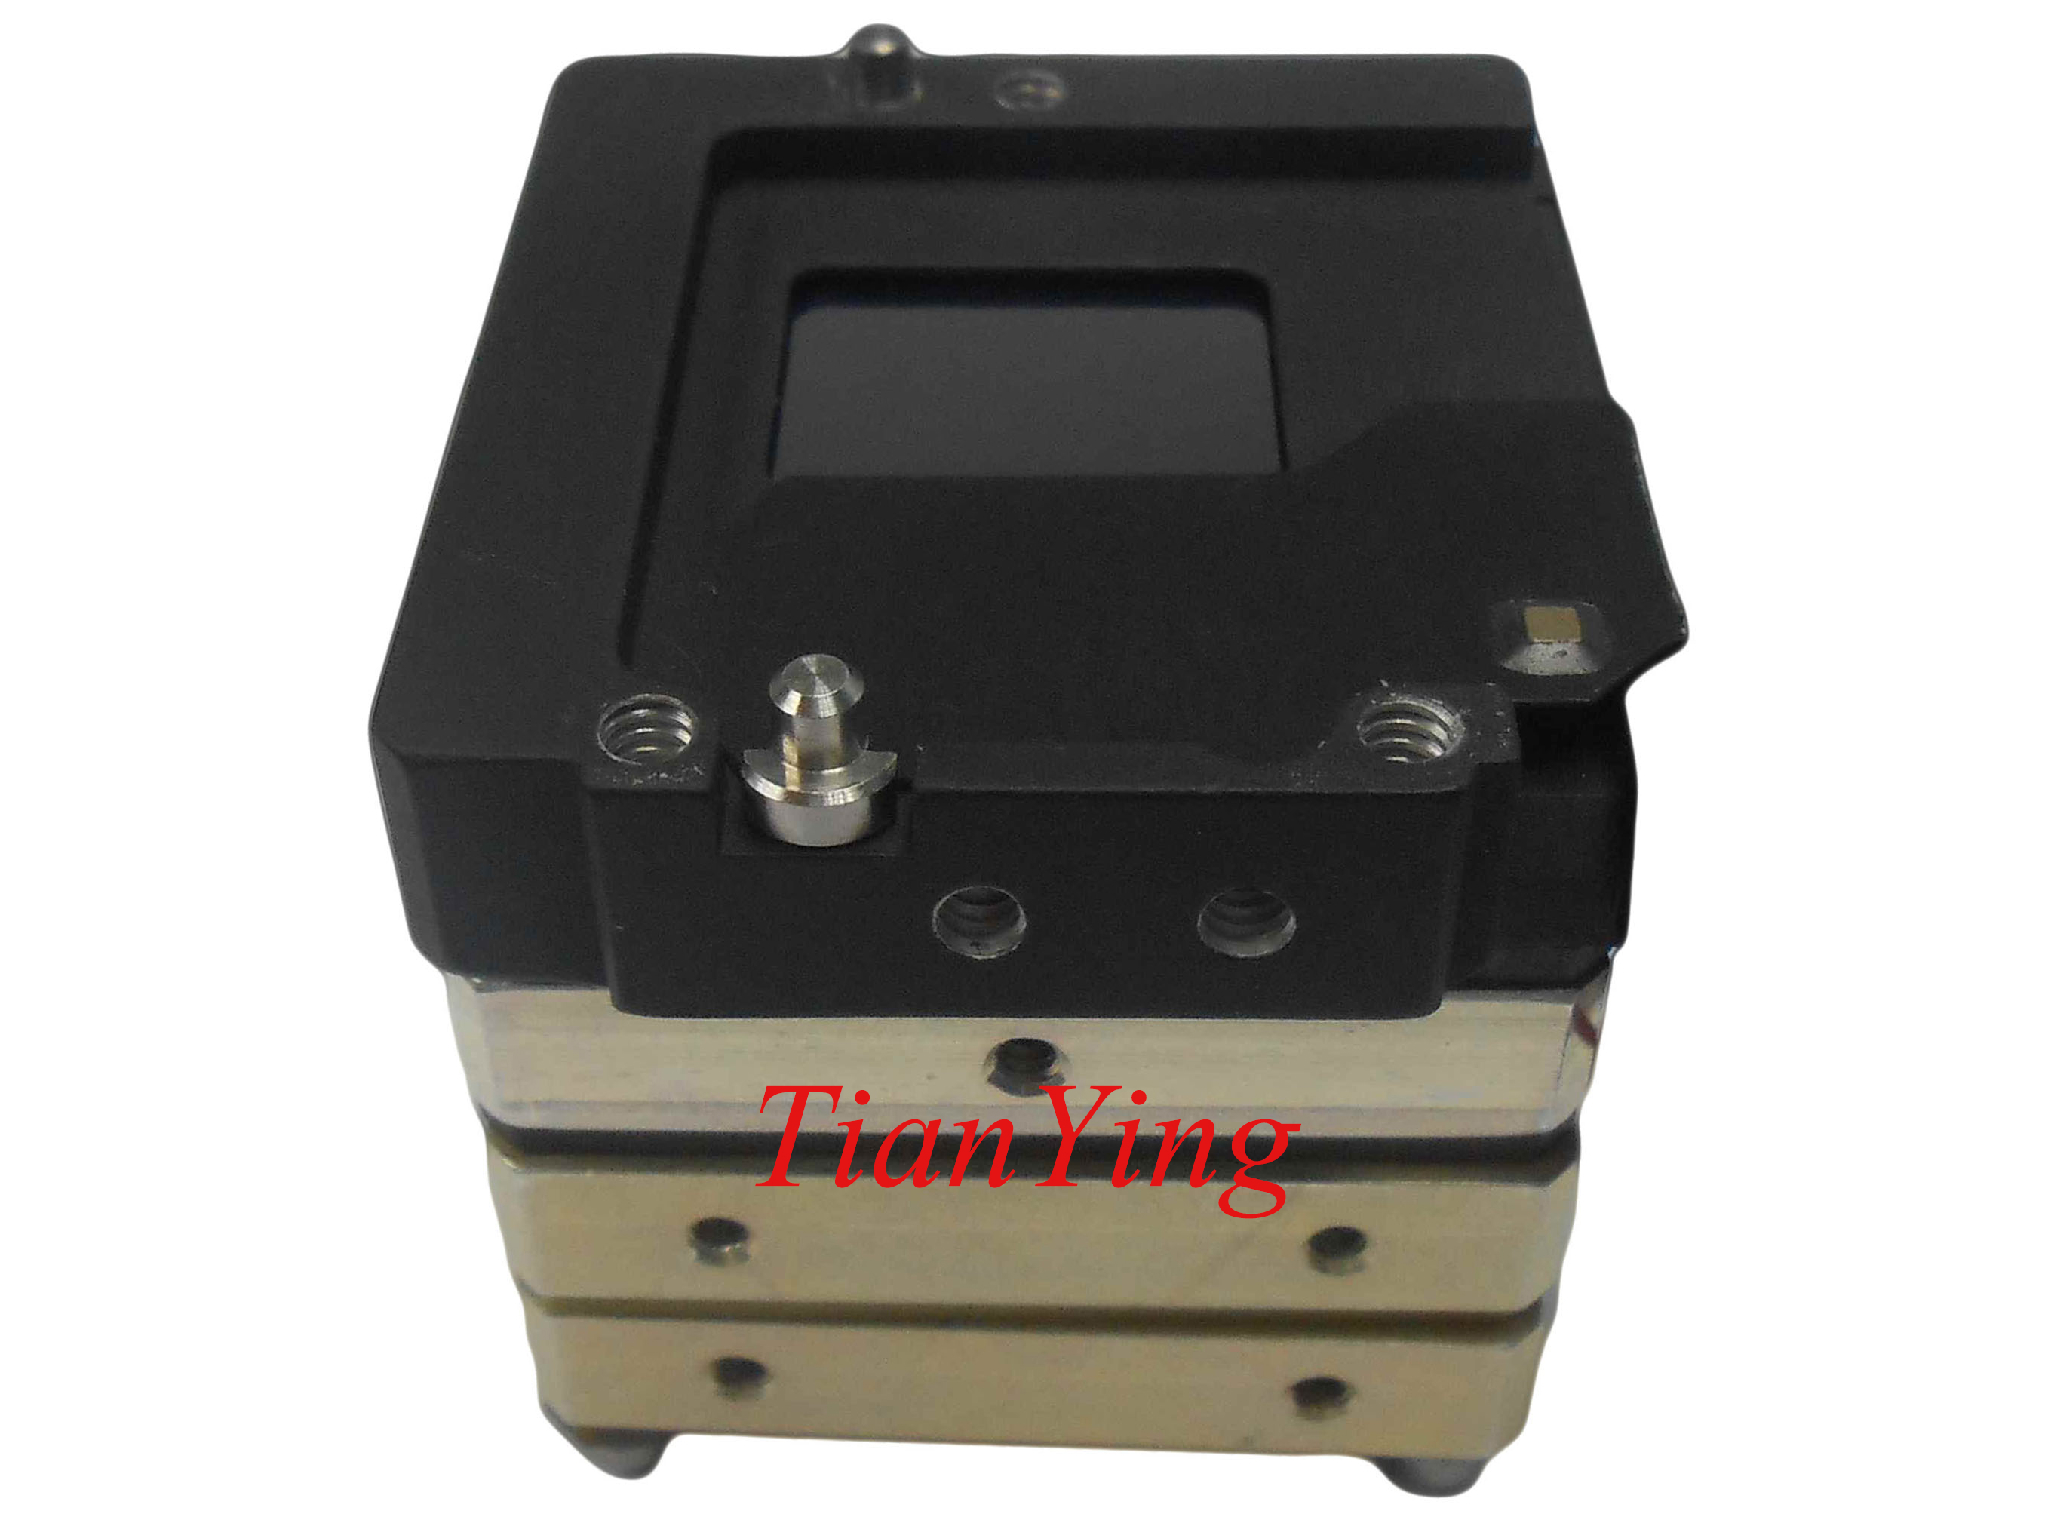 640x512 17microns 40mk 25Hz/30Hz VOx Infrared Thermal Imaging Camera Core